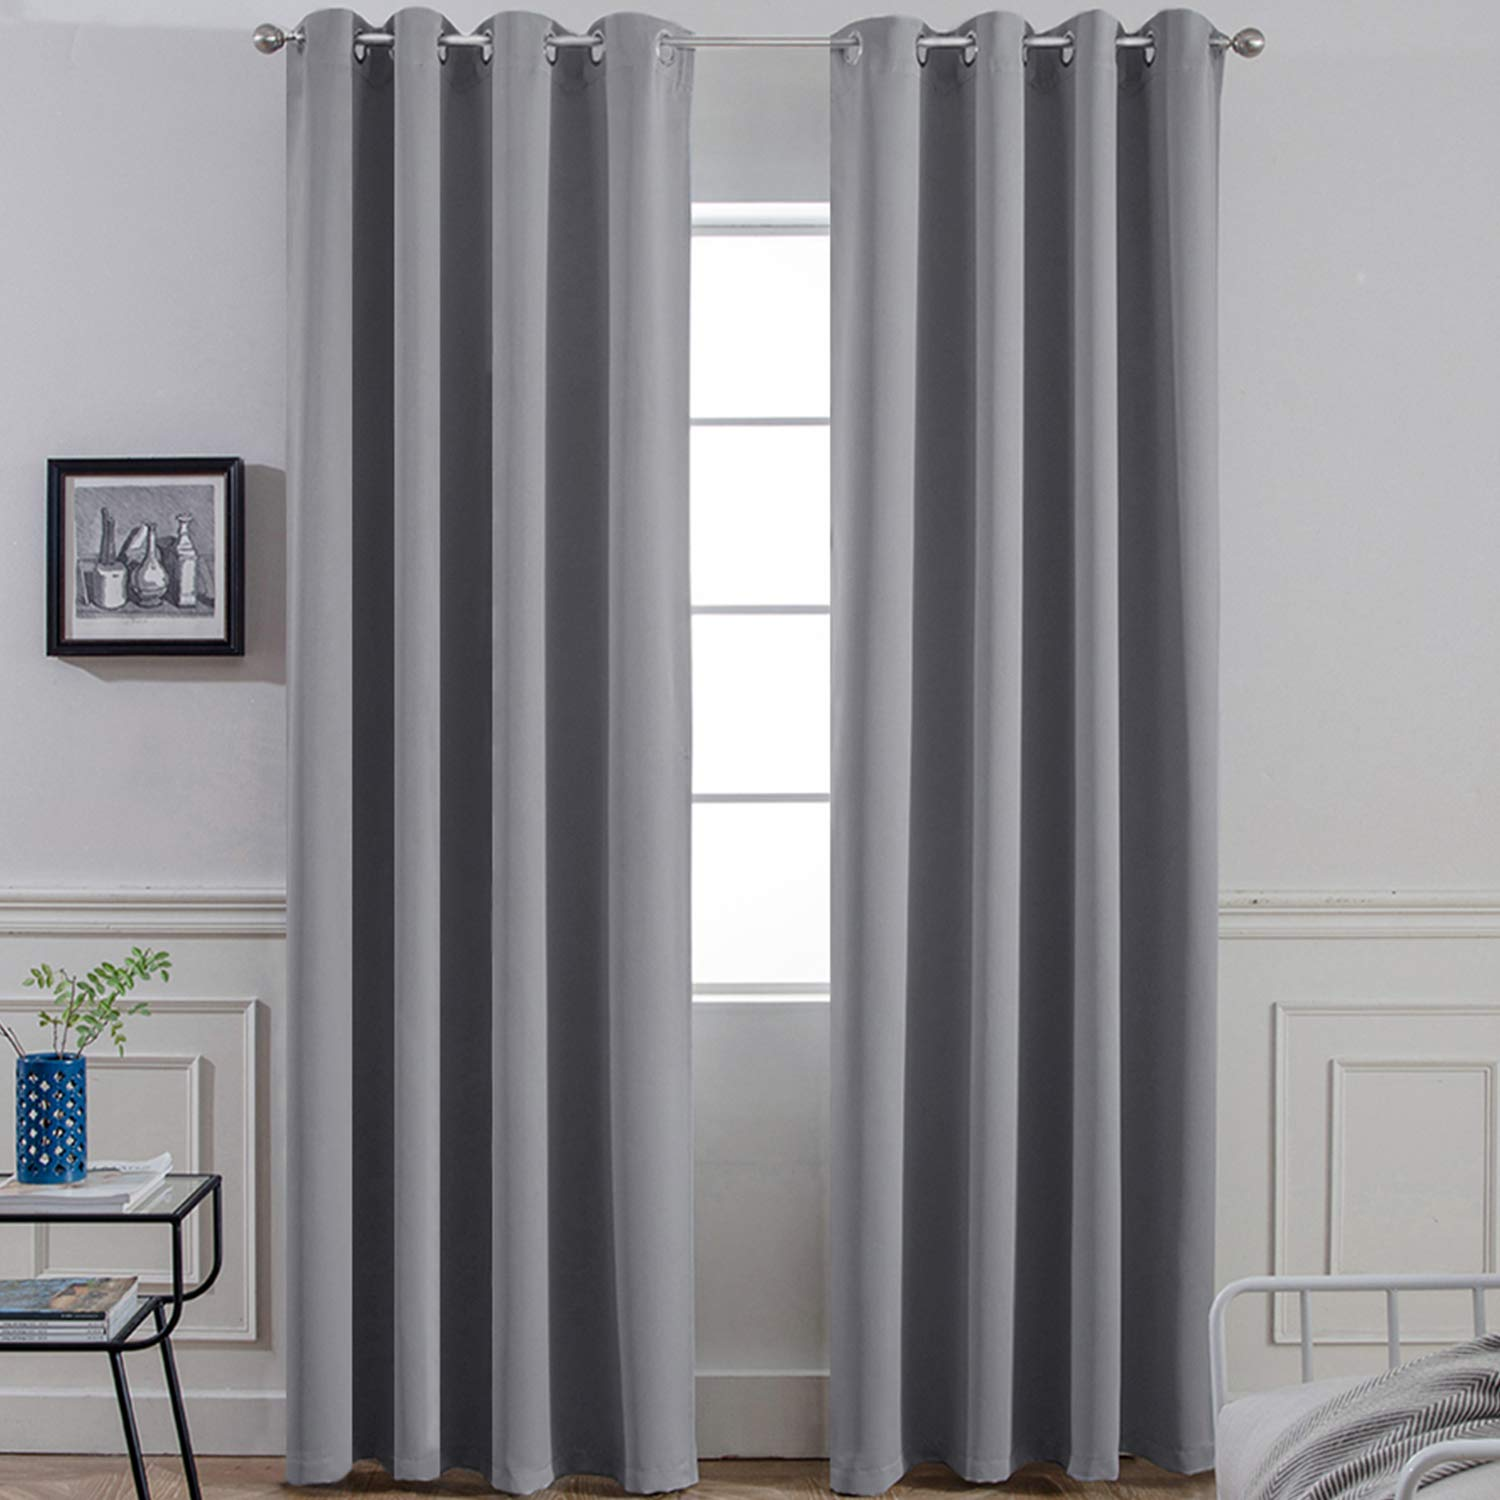 Yakamok Room Darkening Gray Blackout Curtains Thermal Insulated Grommet Curtain Panels for Bedroom, 52W x 84L, Grey, 2 Panels, 2 Tie Backs Included by Yakamok